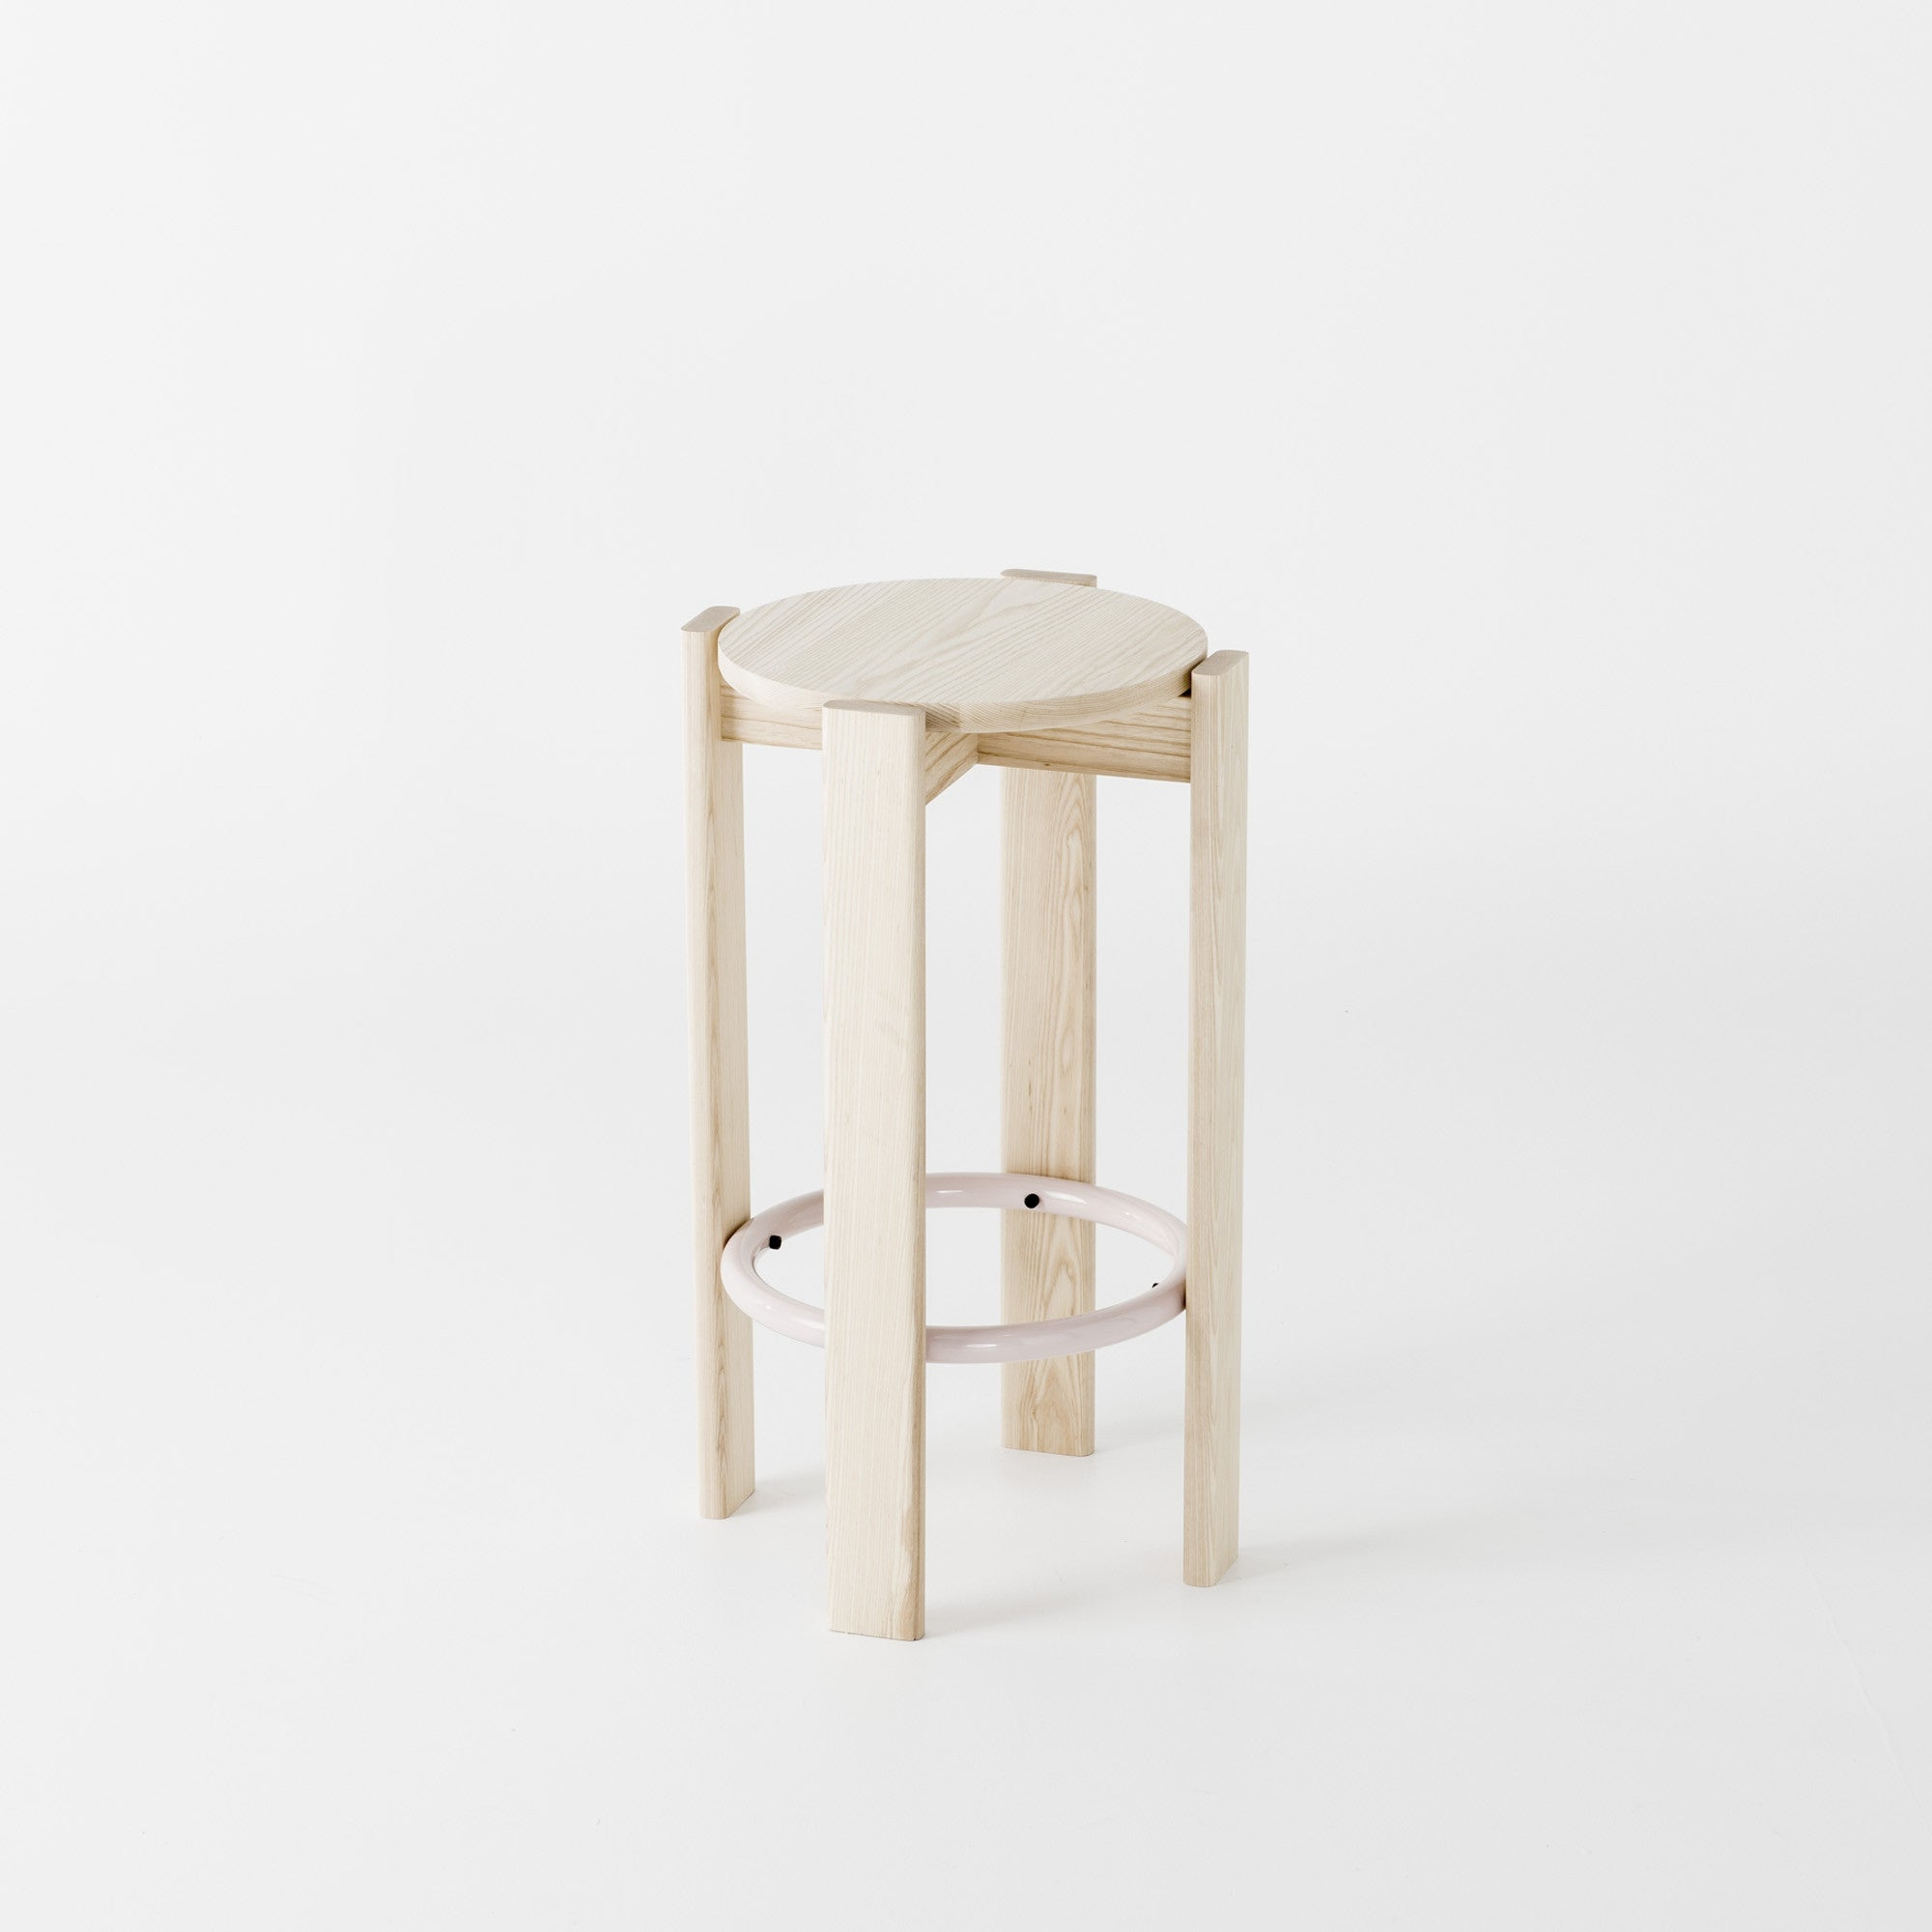 Simon Says High Stool by Dowel Jones